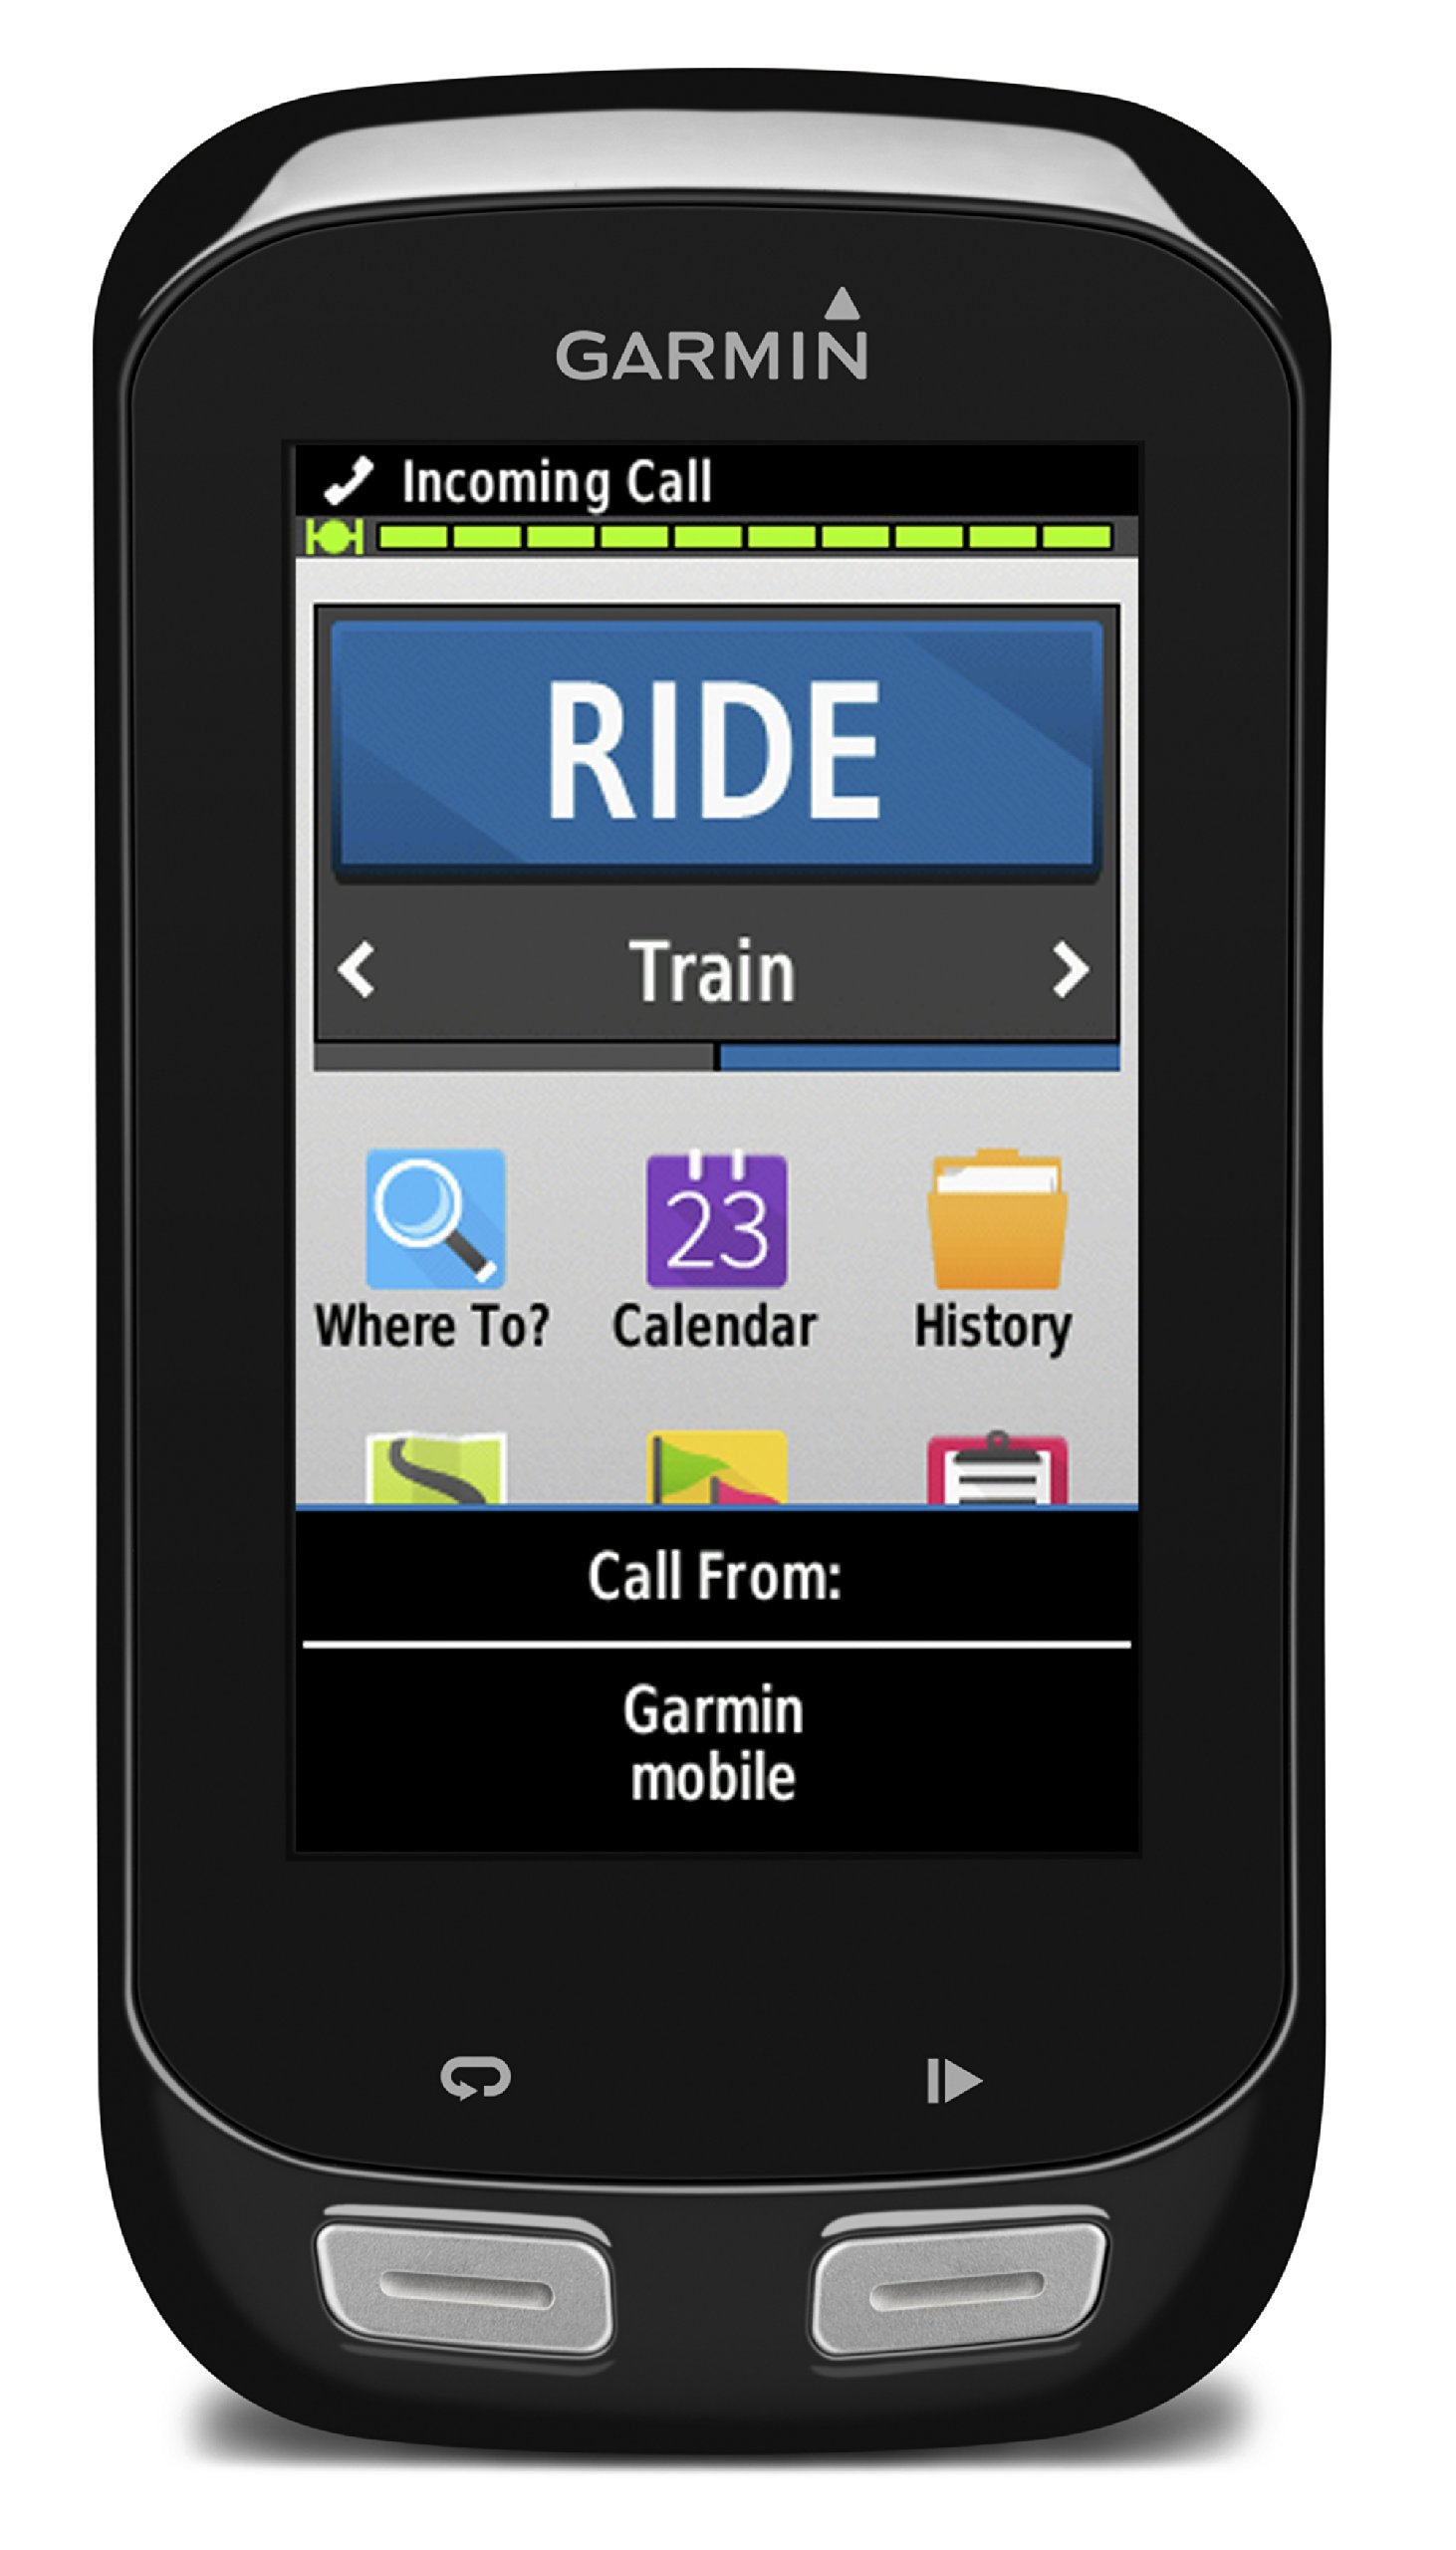 Garmin Edge 1000 Touchscreen GPS Bike Computer with Premium Heart Rate Monitor, Speed and Cadence Sensors - Black product image